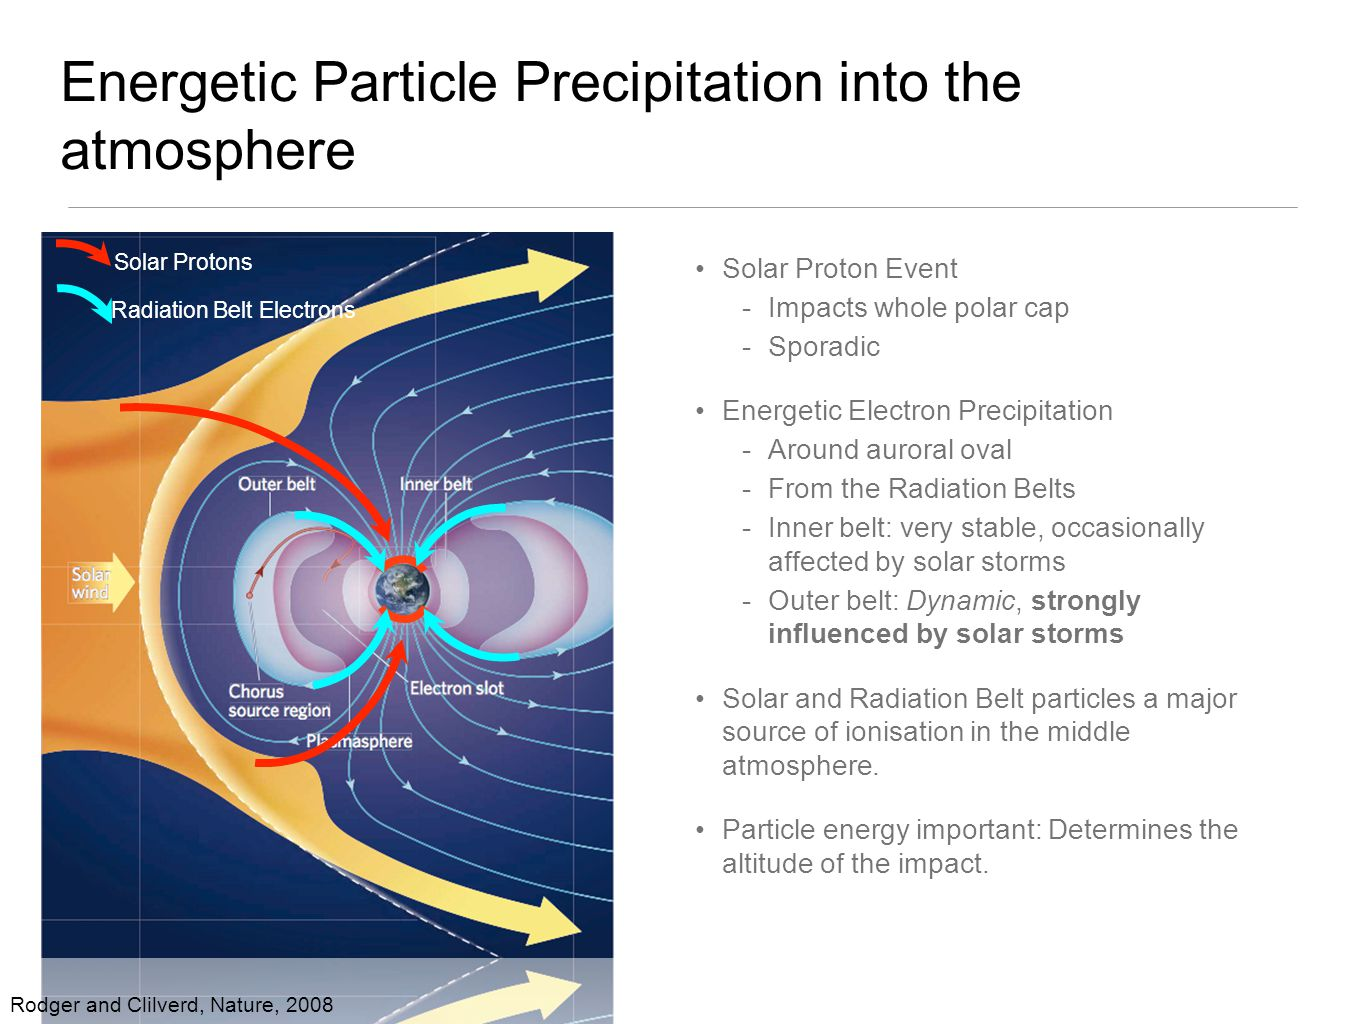 Energetic Particle Precipitation into the atmosphere Solar Protons Radiation Belt Electrons Solar Proton Event -Impacts whole polar cap -Sporadic Energetic Electron Precipitation -Around auroral oval -From the Radiation Belts -Inner belt: very stable, occasionally affected by solar storms -Outer belt: Dynamic, strongly influenced by solar storms Solar and Radiation Belt particles a major source of ionisation in the middle atmosphere.